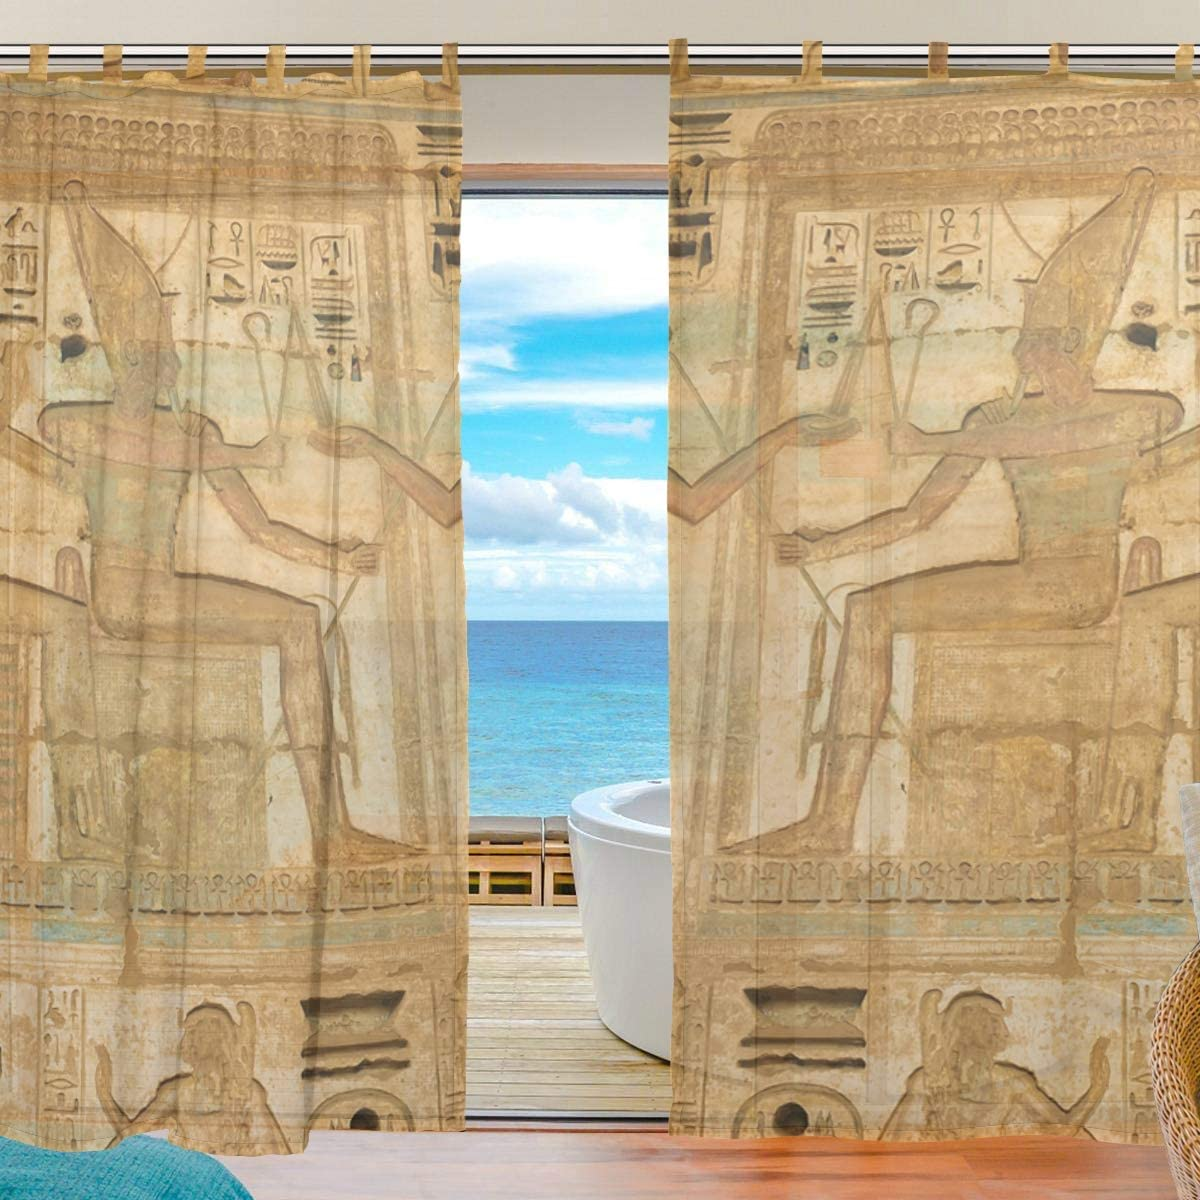 SUABO 2PCS Sheer Window Curtain Panels for Bedroom Living Room 55 W x 78 L Egyptian Mural Art Pattern